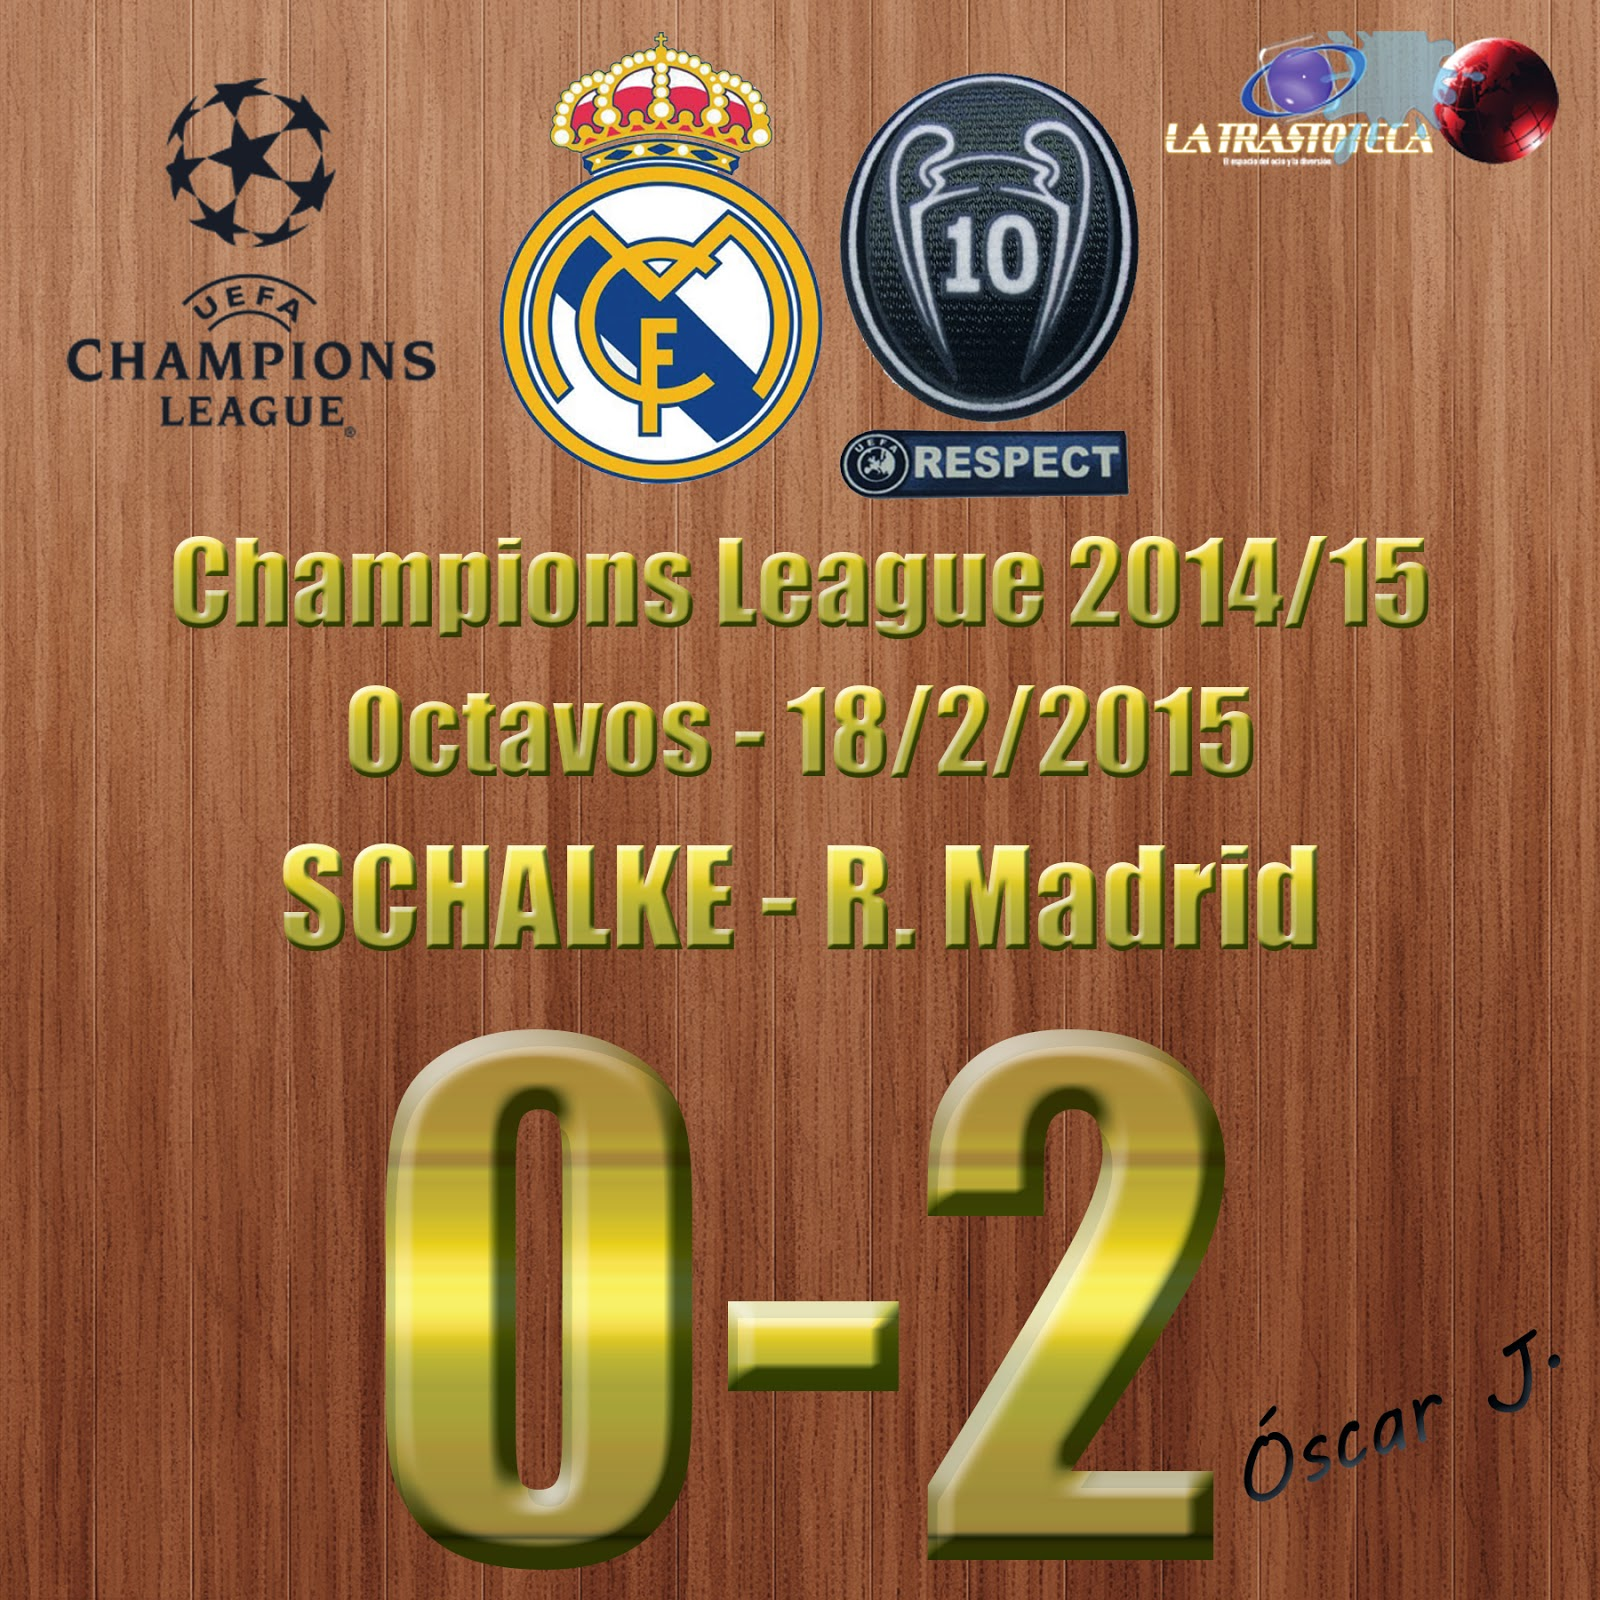 Shalke 04 0-2 Real Madrid - Champions League 2014/15 - Octavos - (18/2/2014)